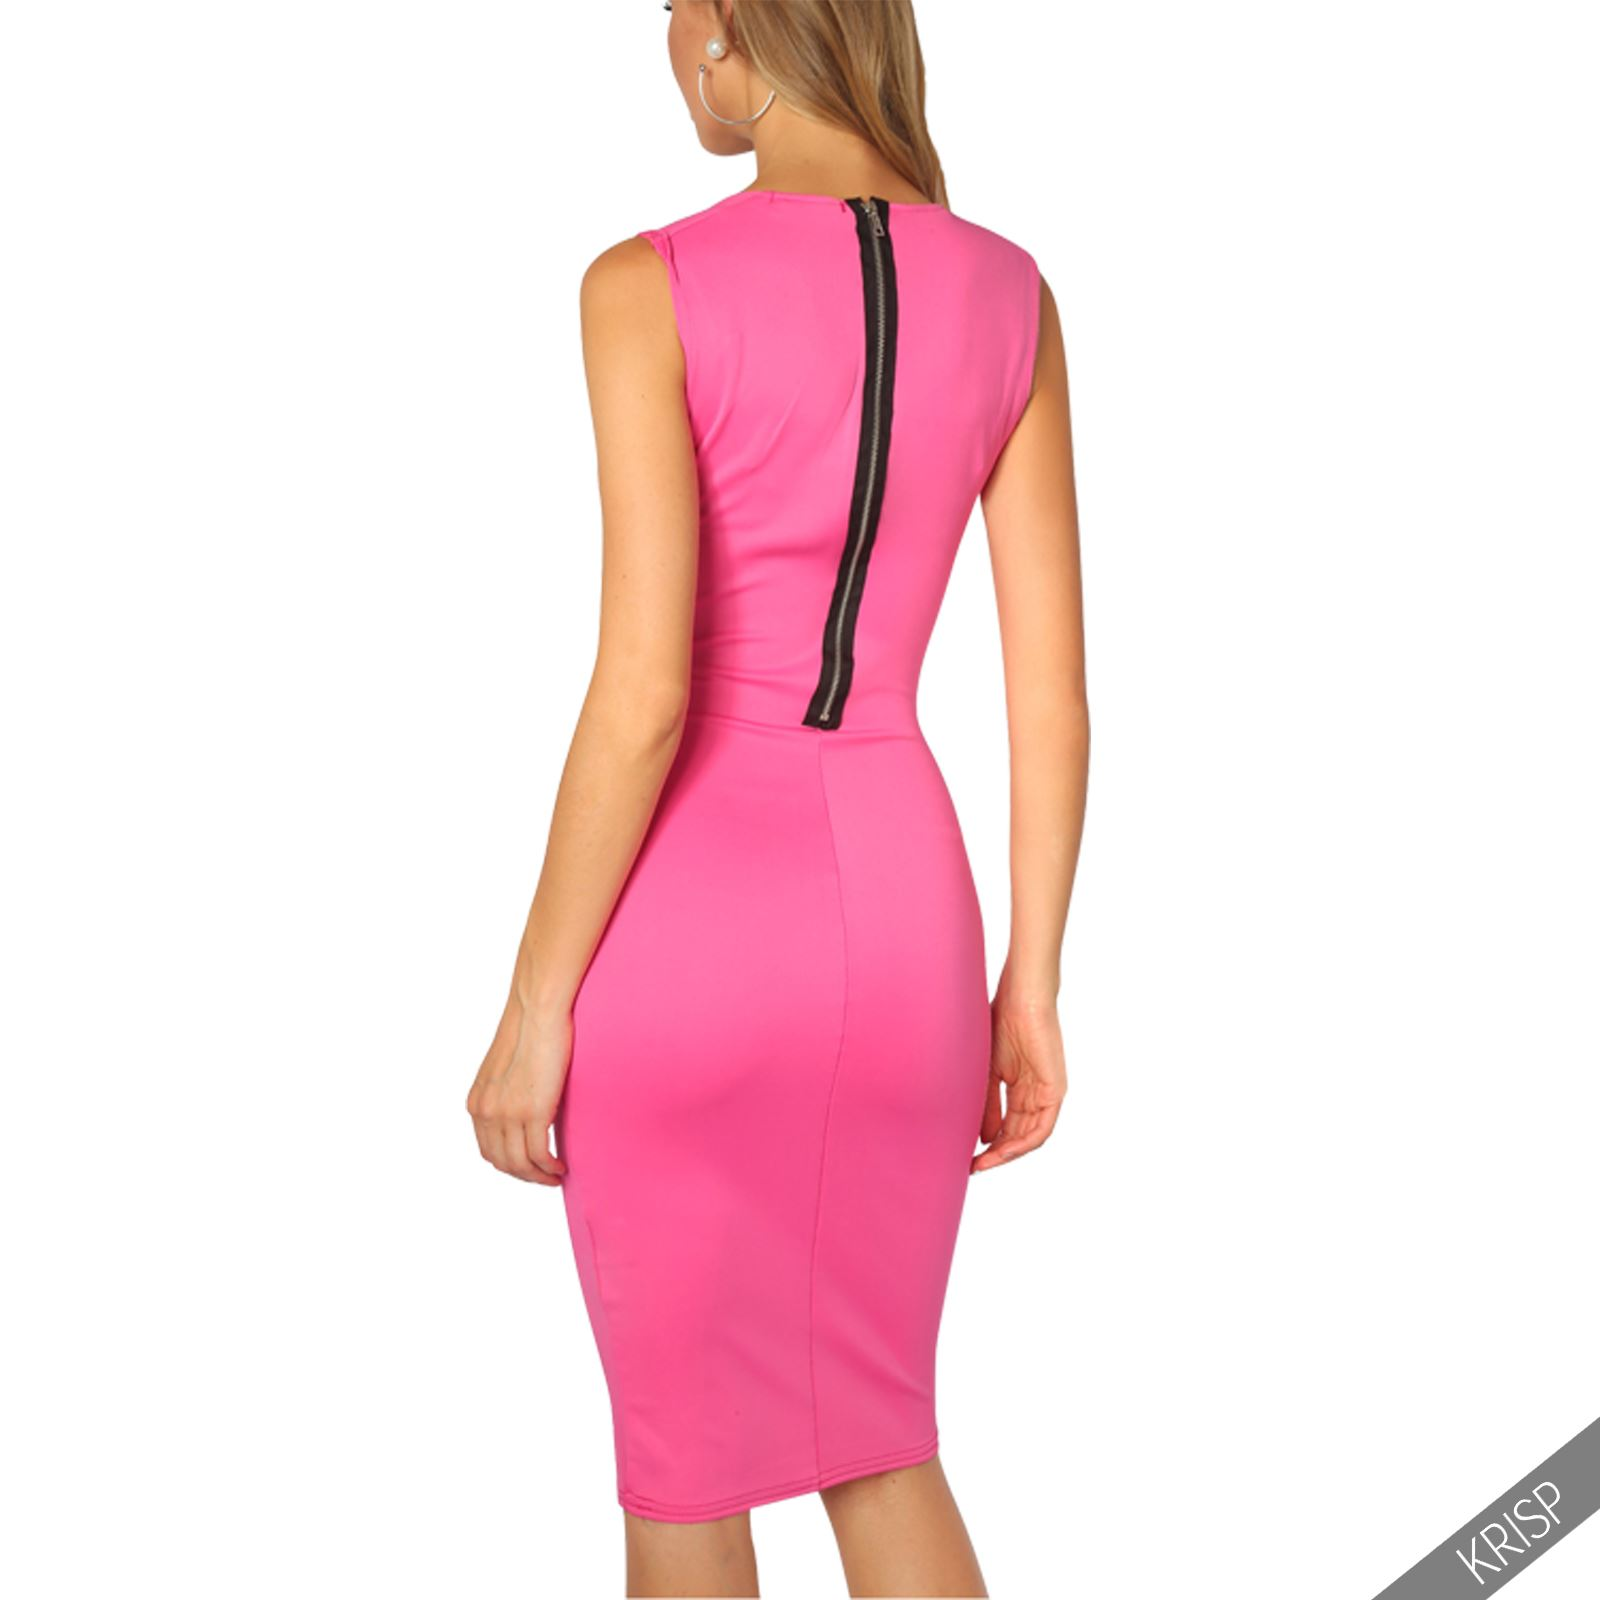 Womens-Pencil-Midi-Bodycon-Dress-Square-Neck-Panelled-Sexy-Zip-Party-Evening thumbnail 7